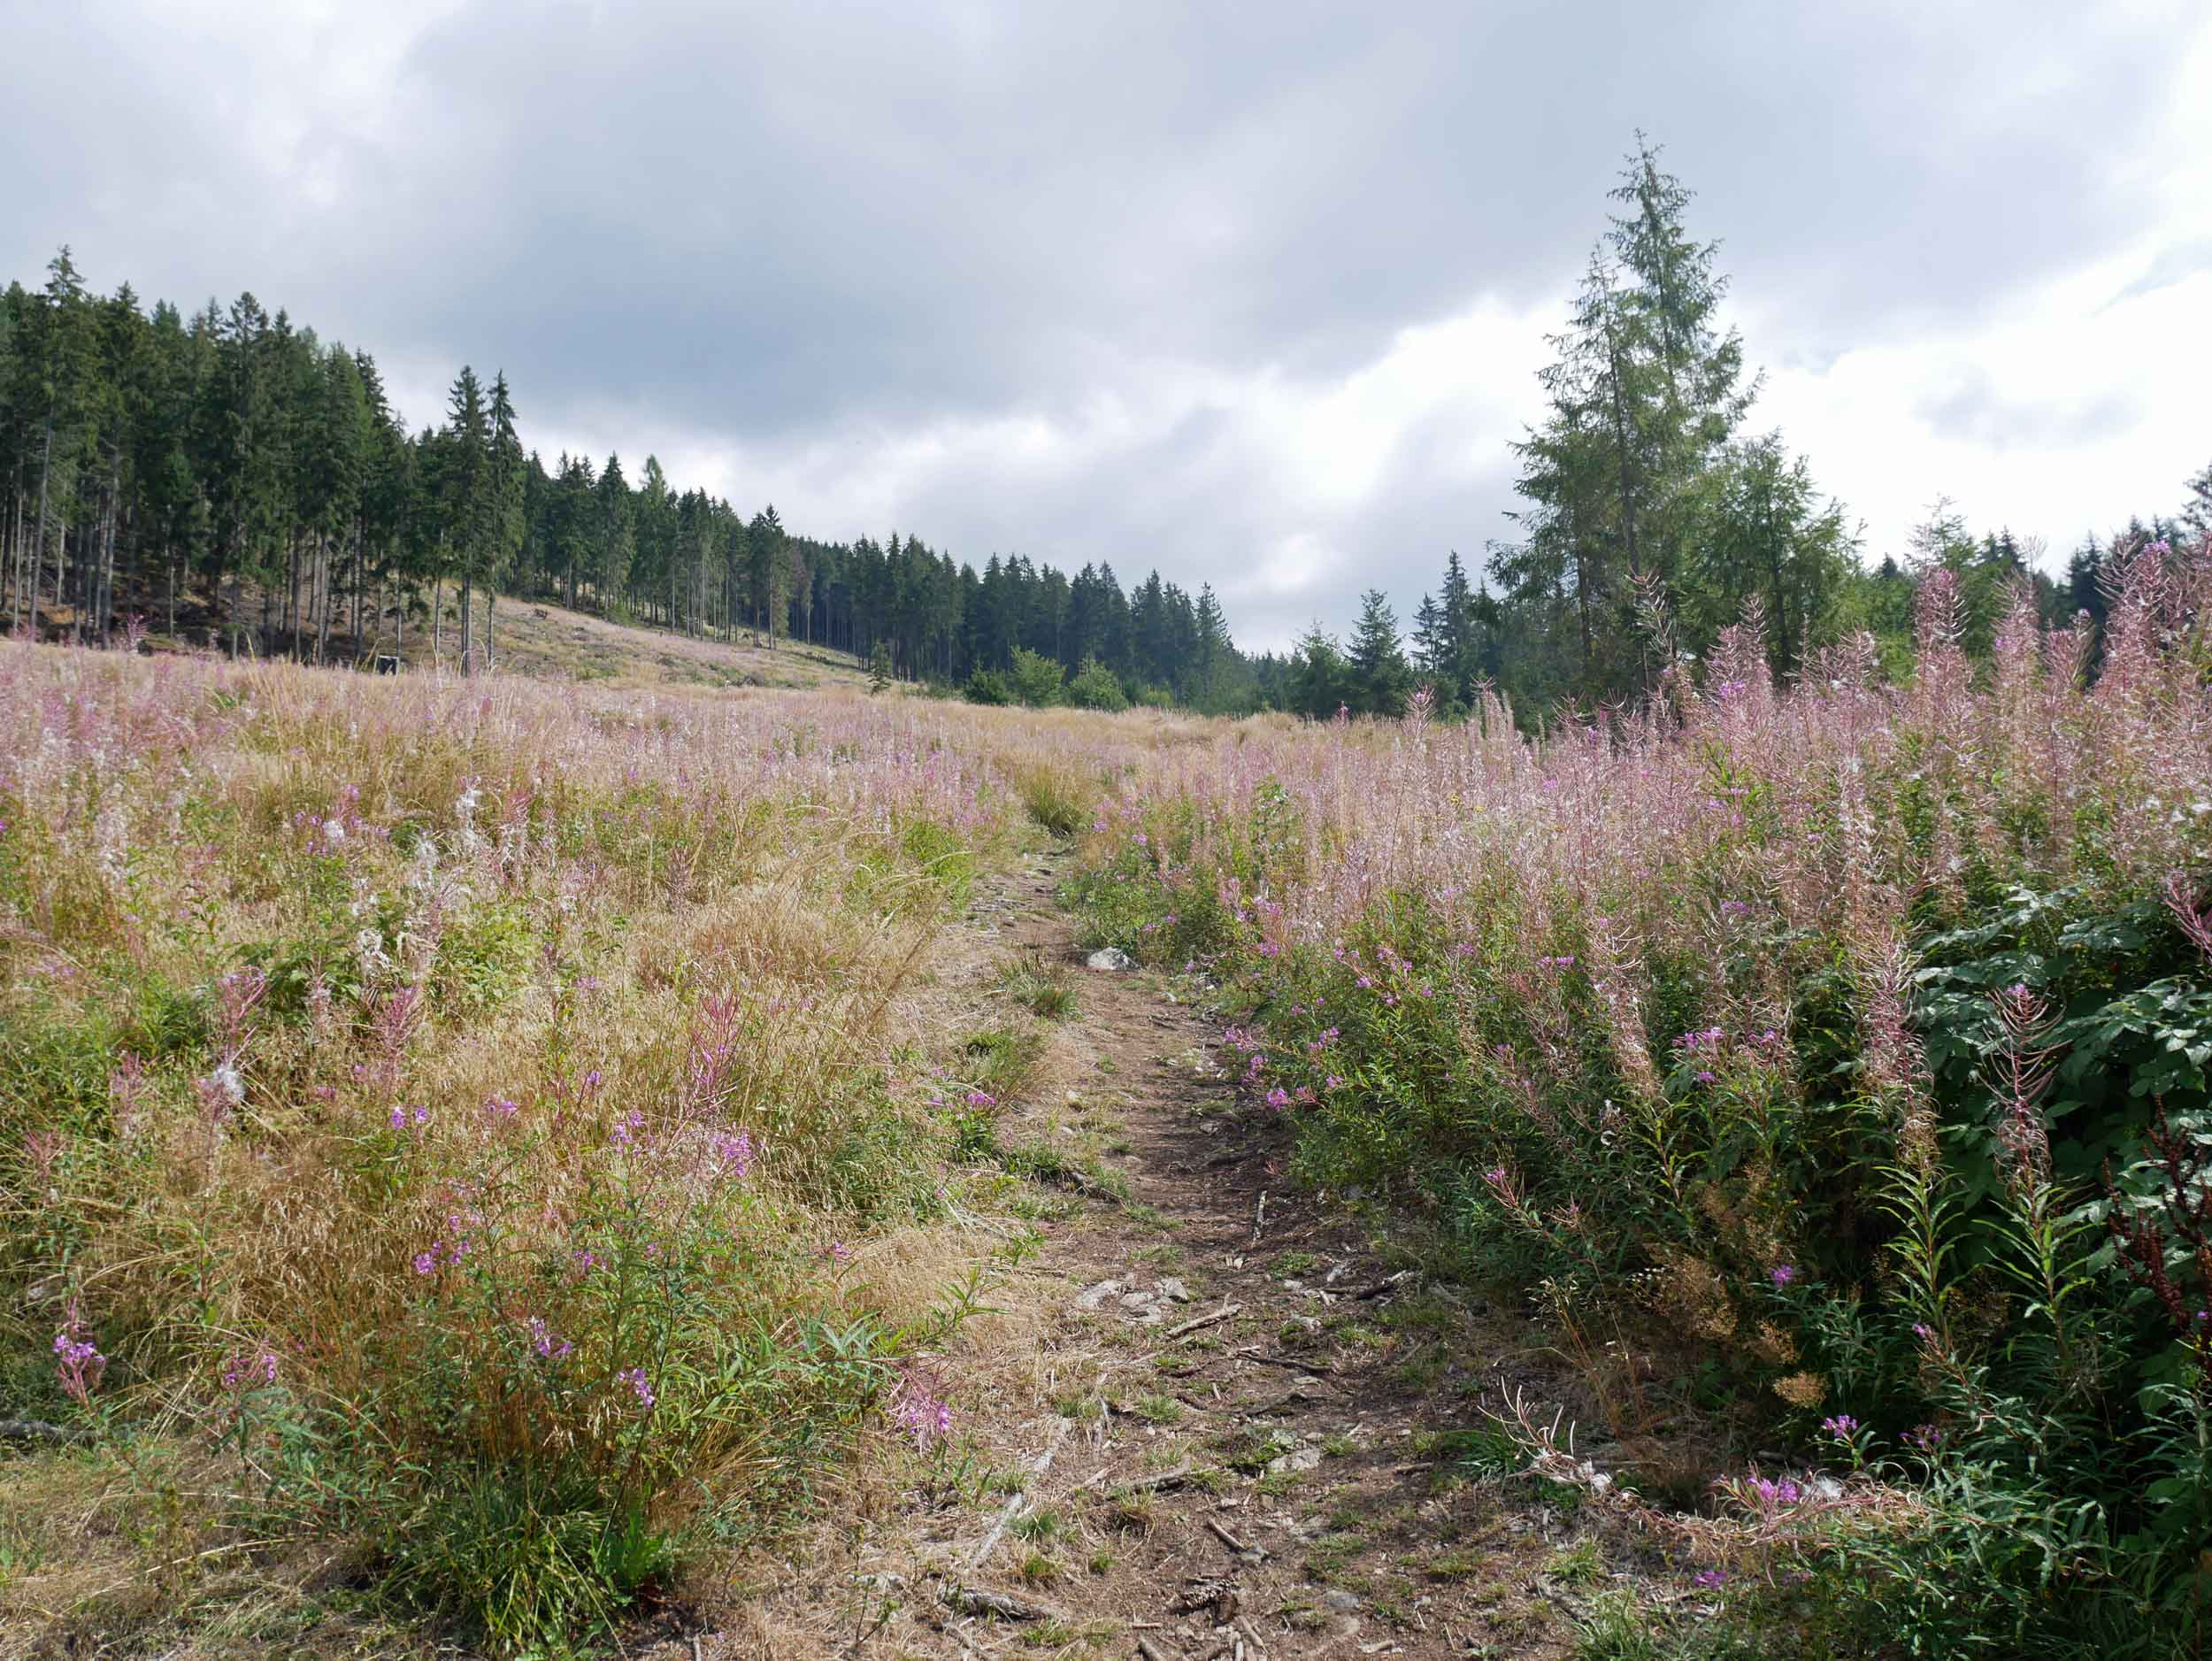 The path before us in the Western Tatras, the hillsides covered in beautiful purple flowers that had gone to seed.